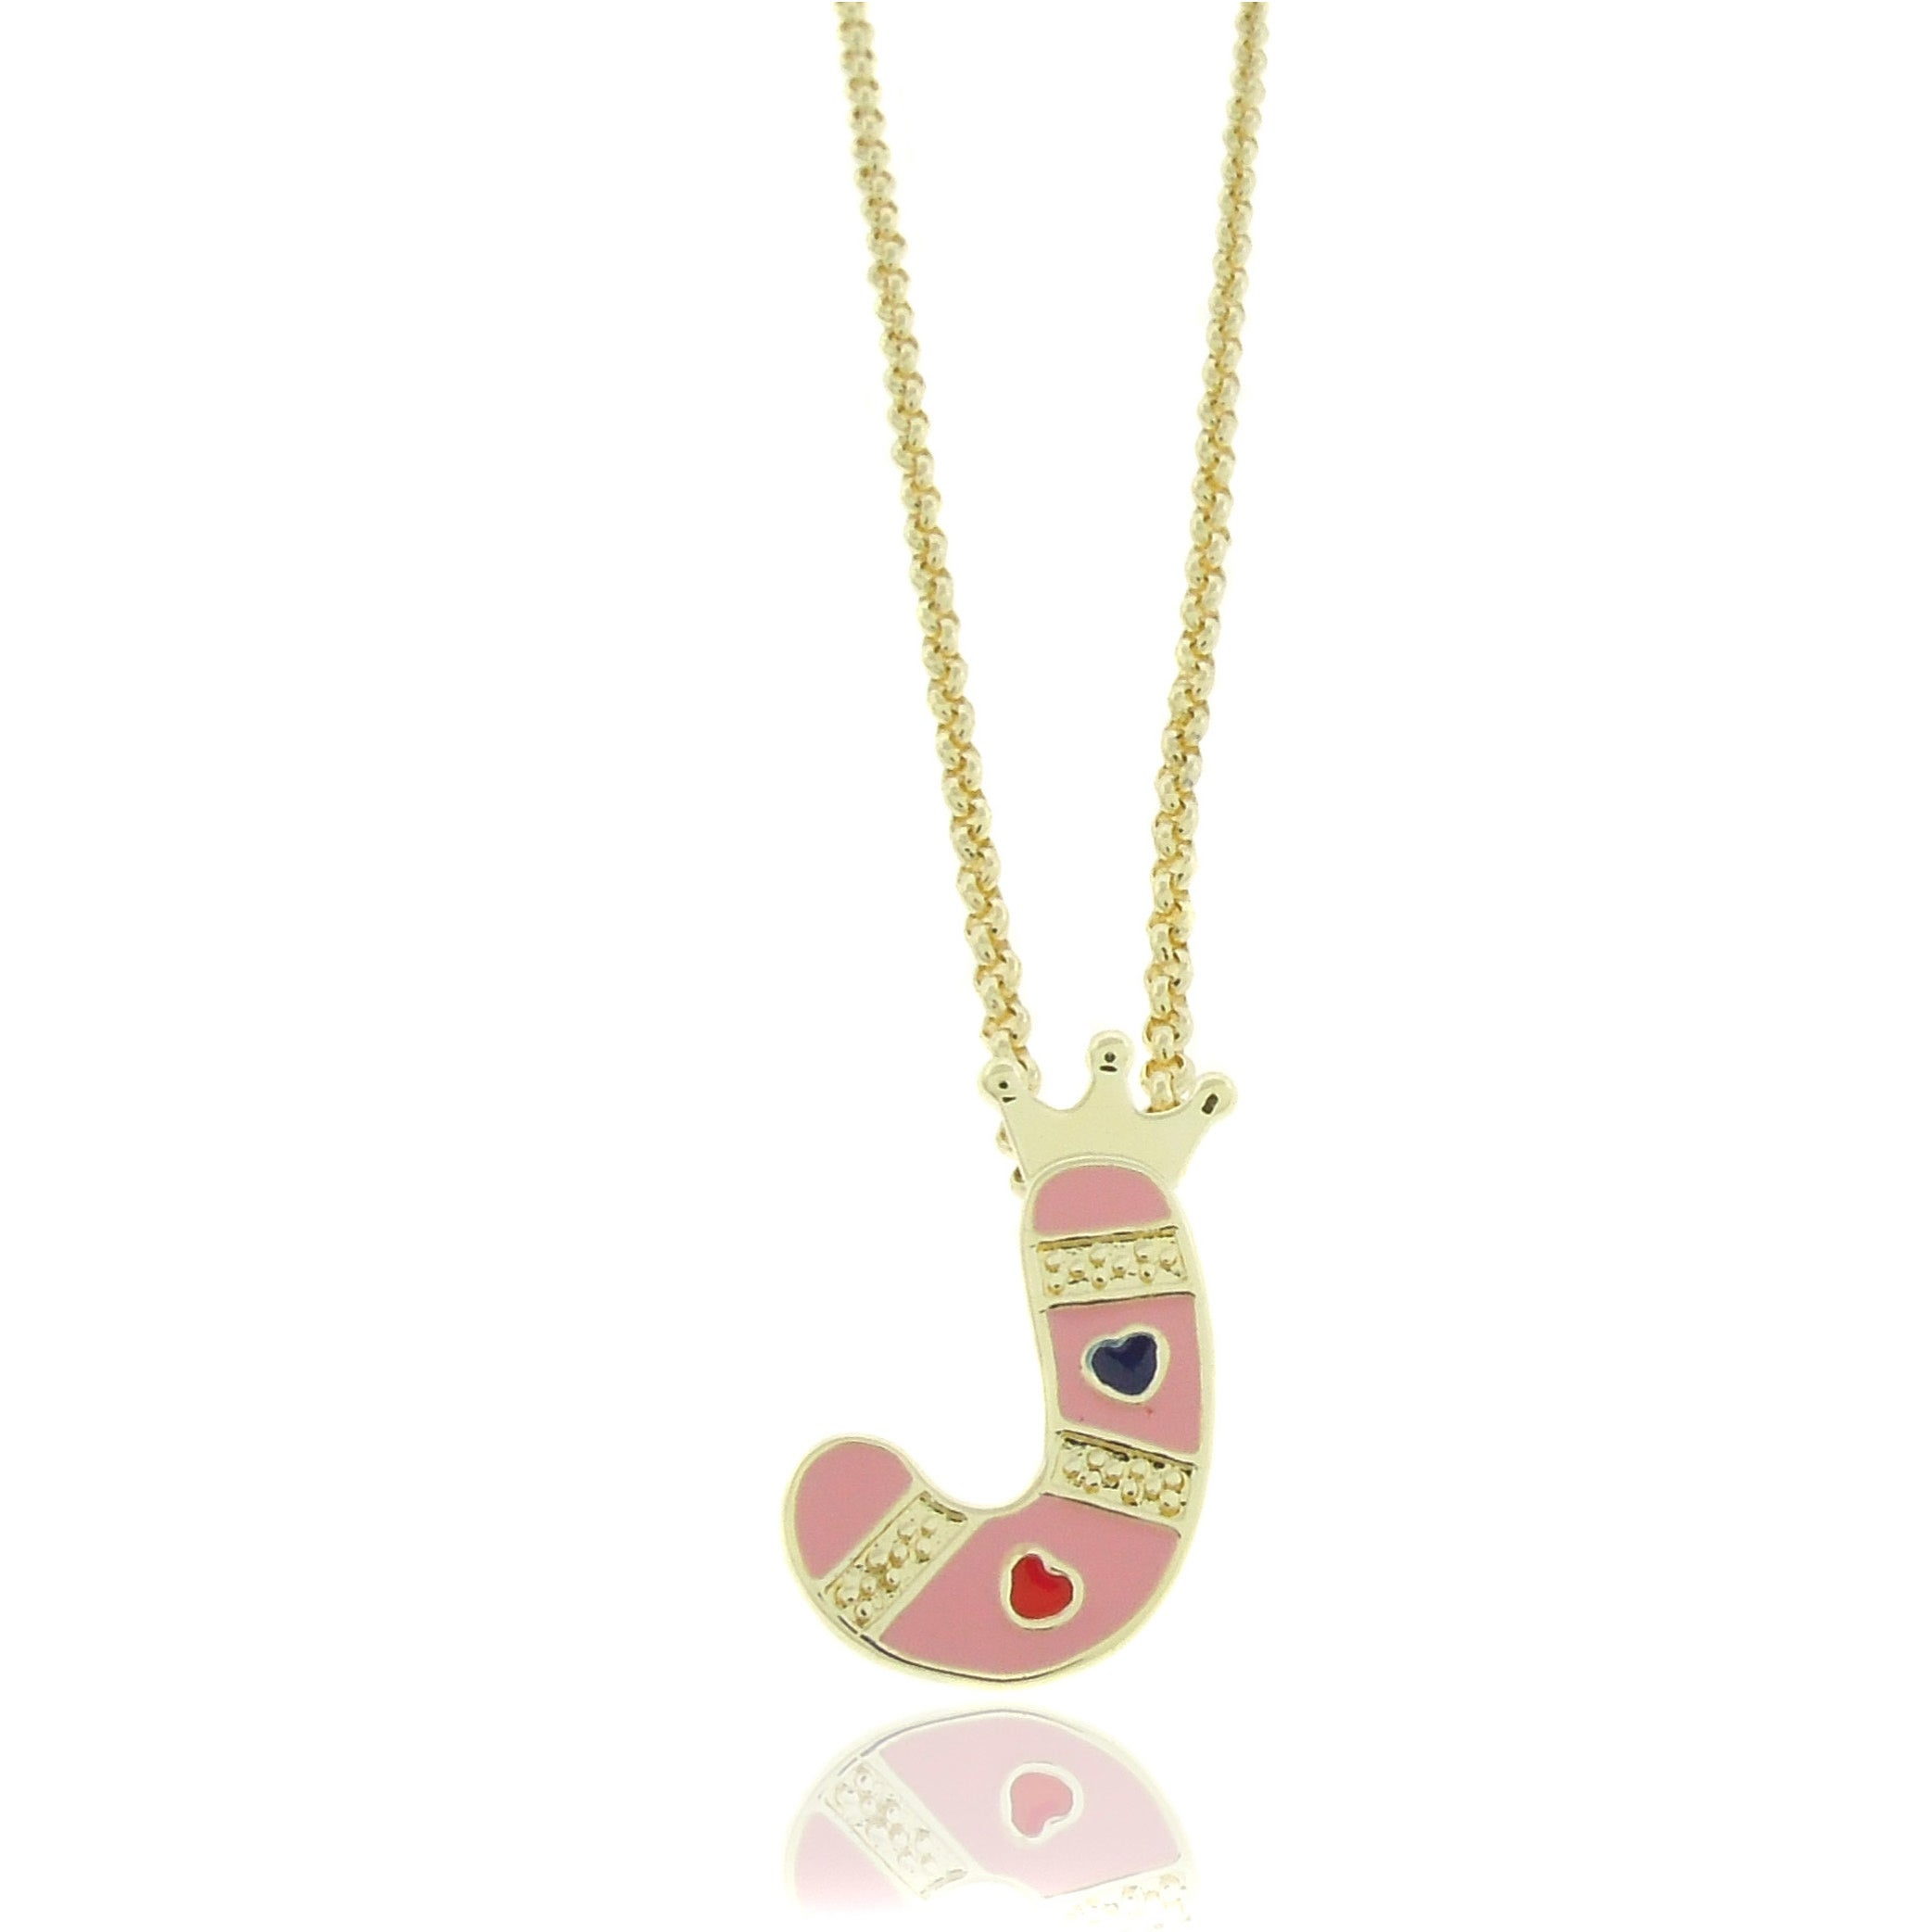 miracle diamond heart children childrens best necklace s locket gold in pendant design pleasurable ideas filled